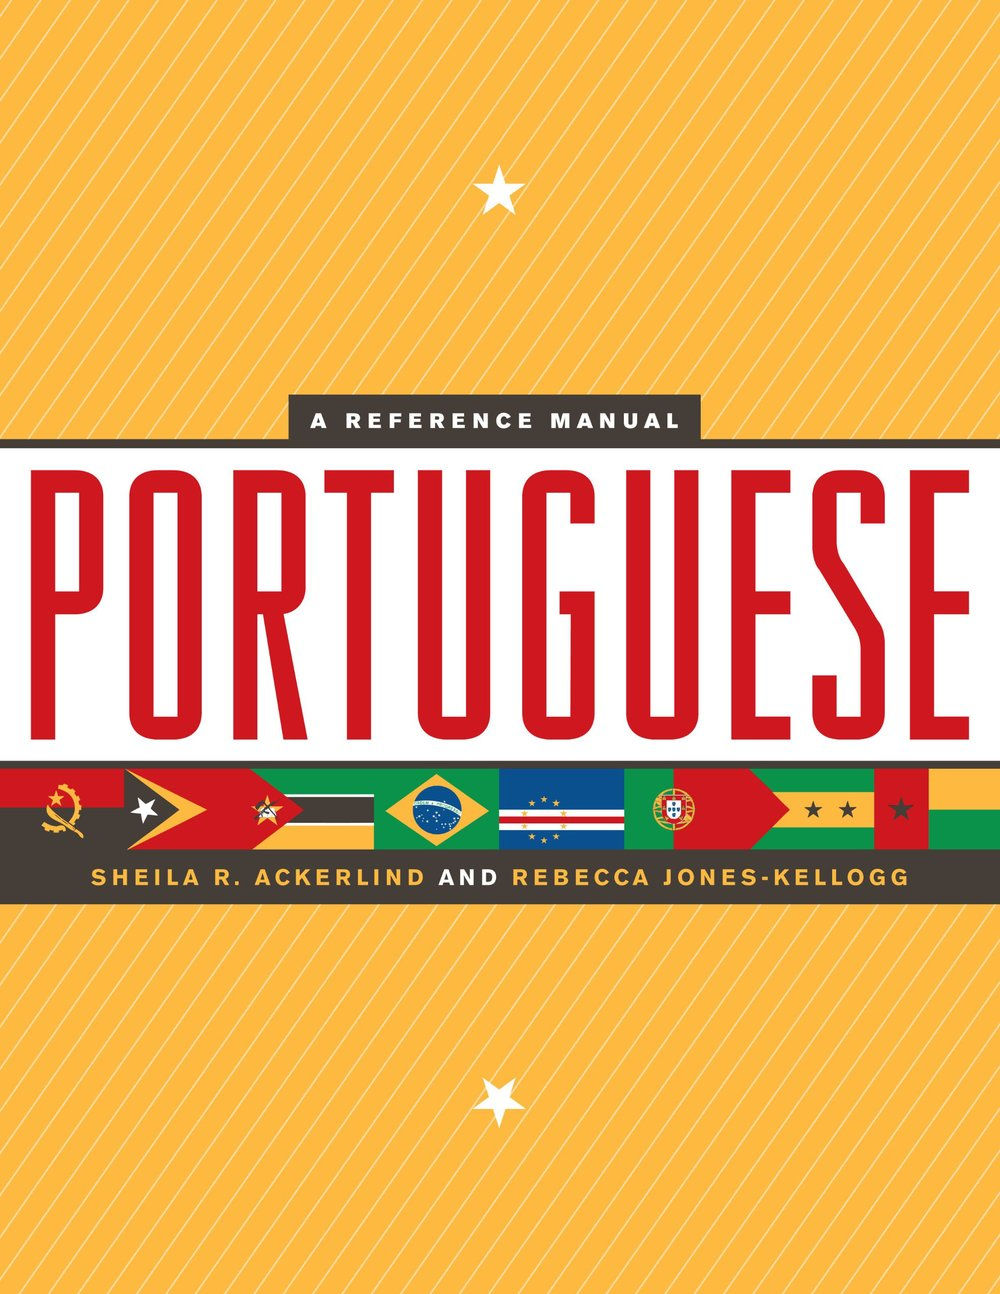 portuguese a reference manual.jpg